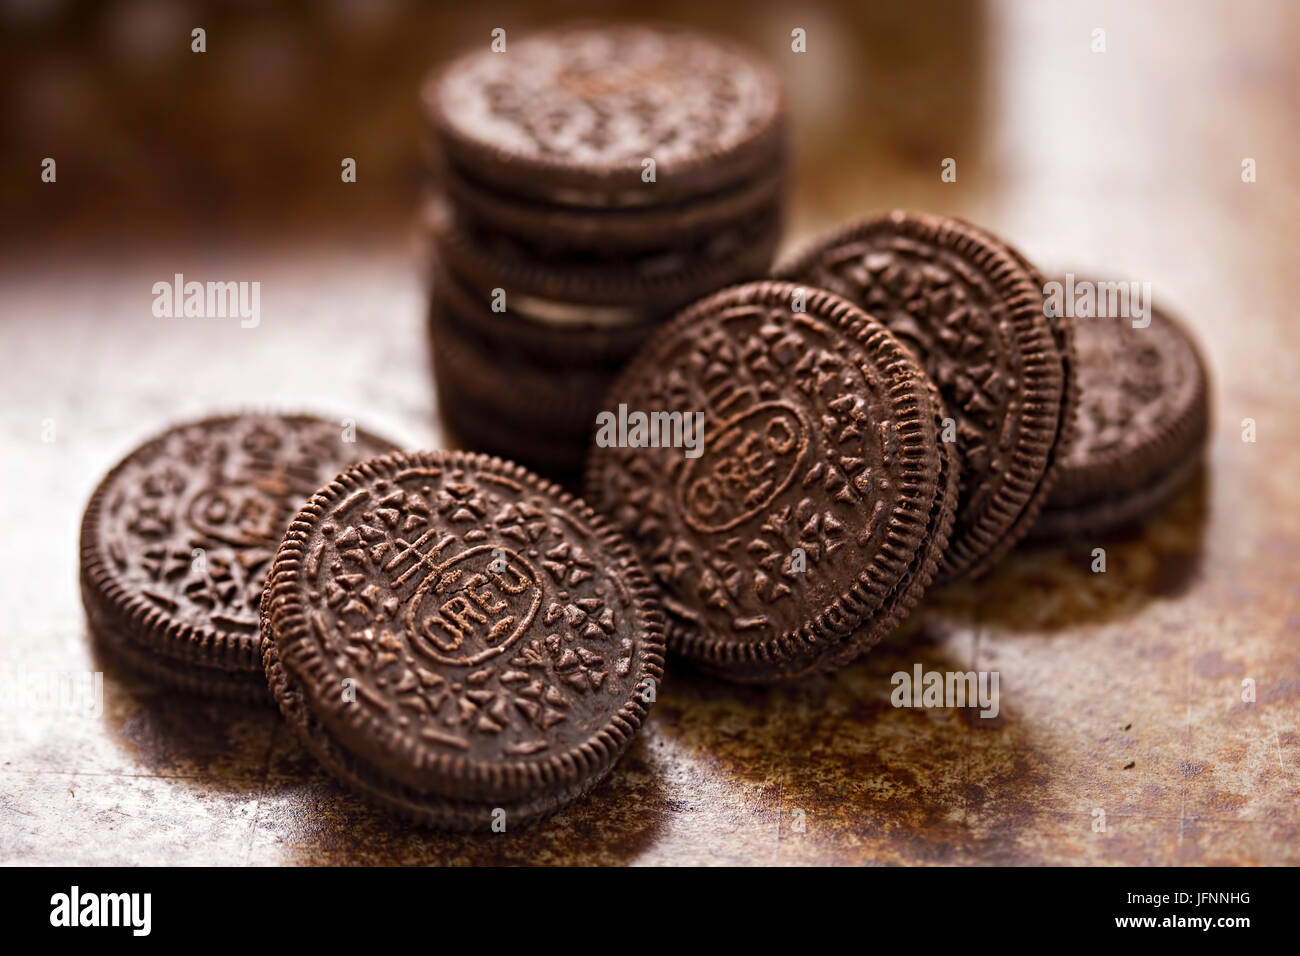 Oreo cookies on brown background - Stock Image